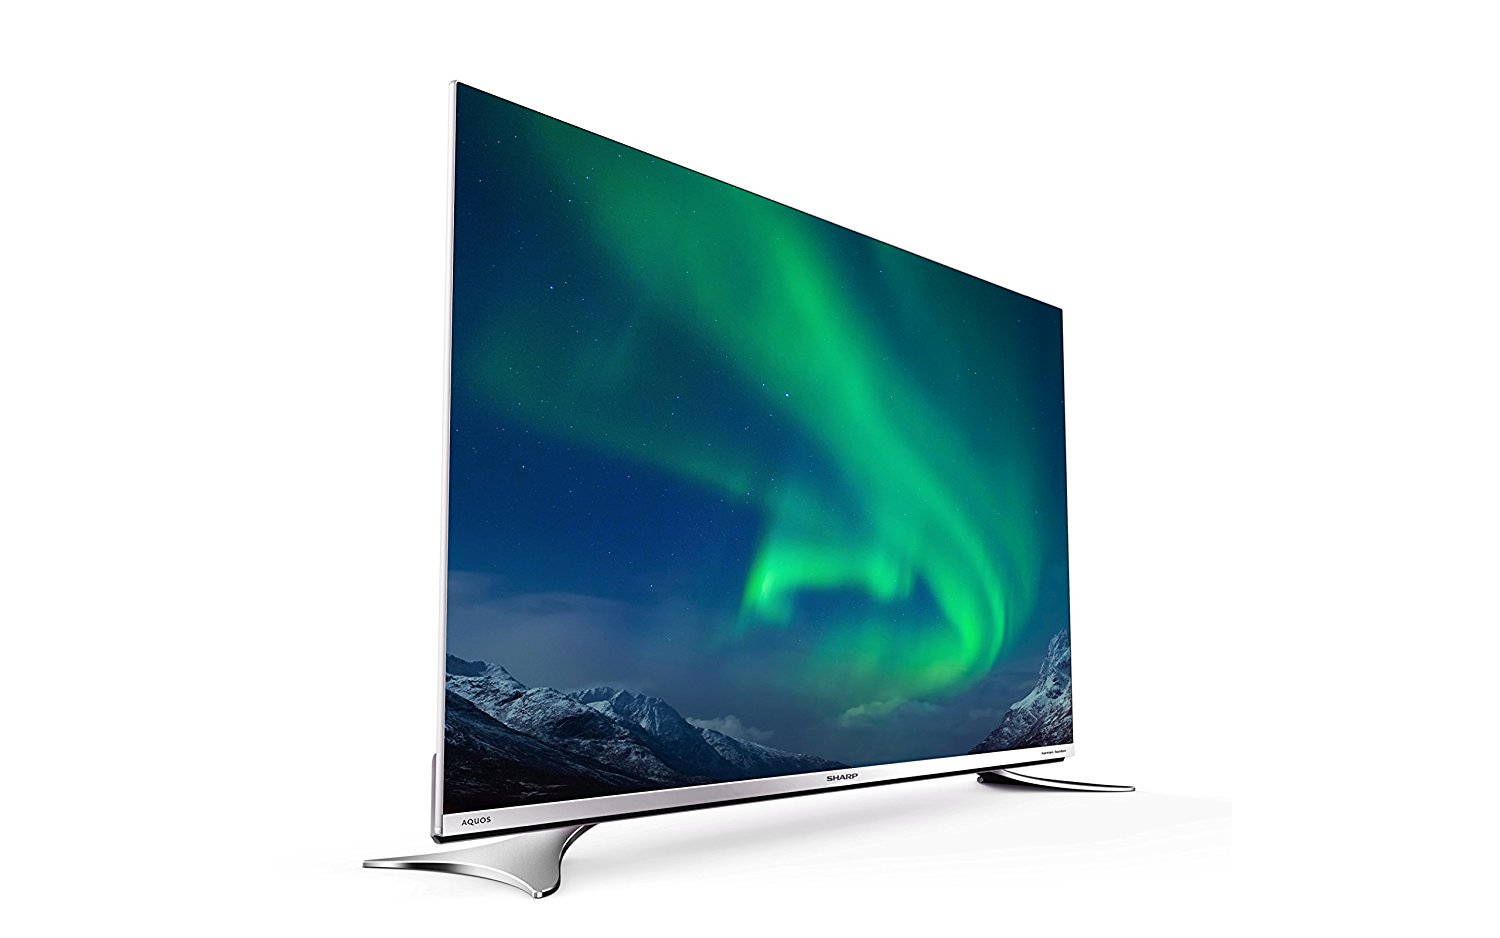 amazon angebote am 15 3 sharp 49 zoll uhd fernseher. Black Bedroom Furniture Sets. Home Design Ideas